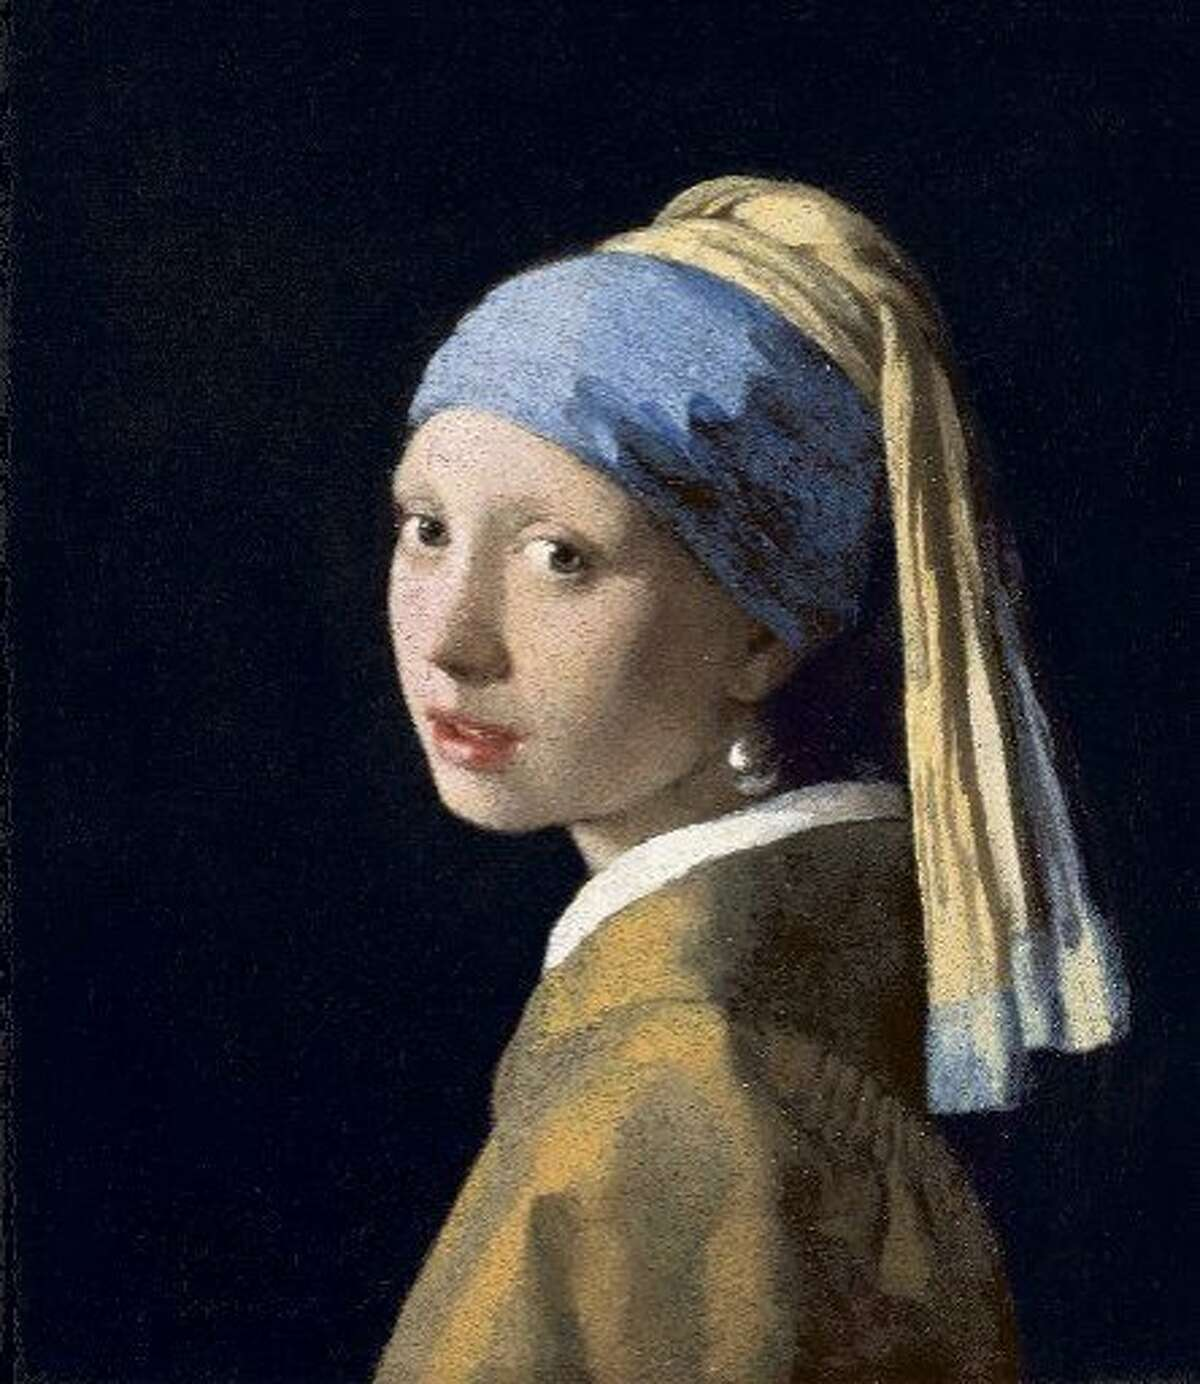 """""""The Girl With the Pearl Earring"""" appeared in the """"The Girl With a Pearl Earring: Dutch Paintings from the Mauritshuis"""" show from Jan. 26 to June 2, 2013."""